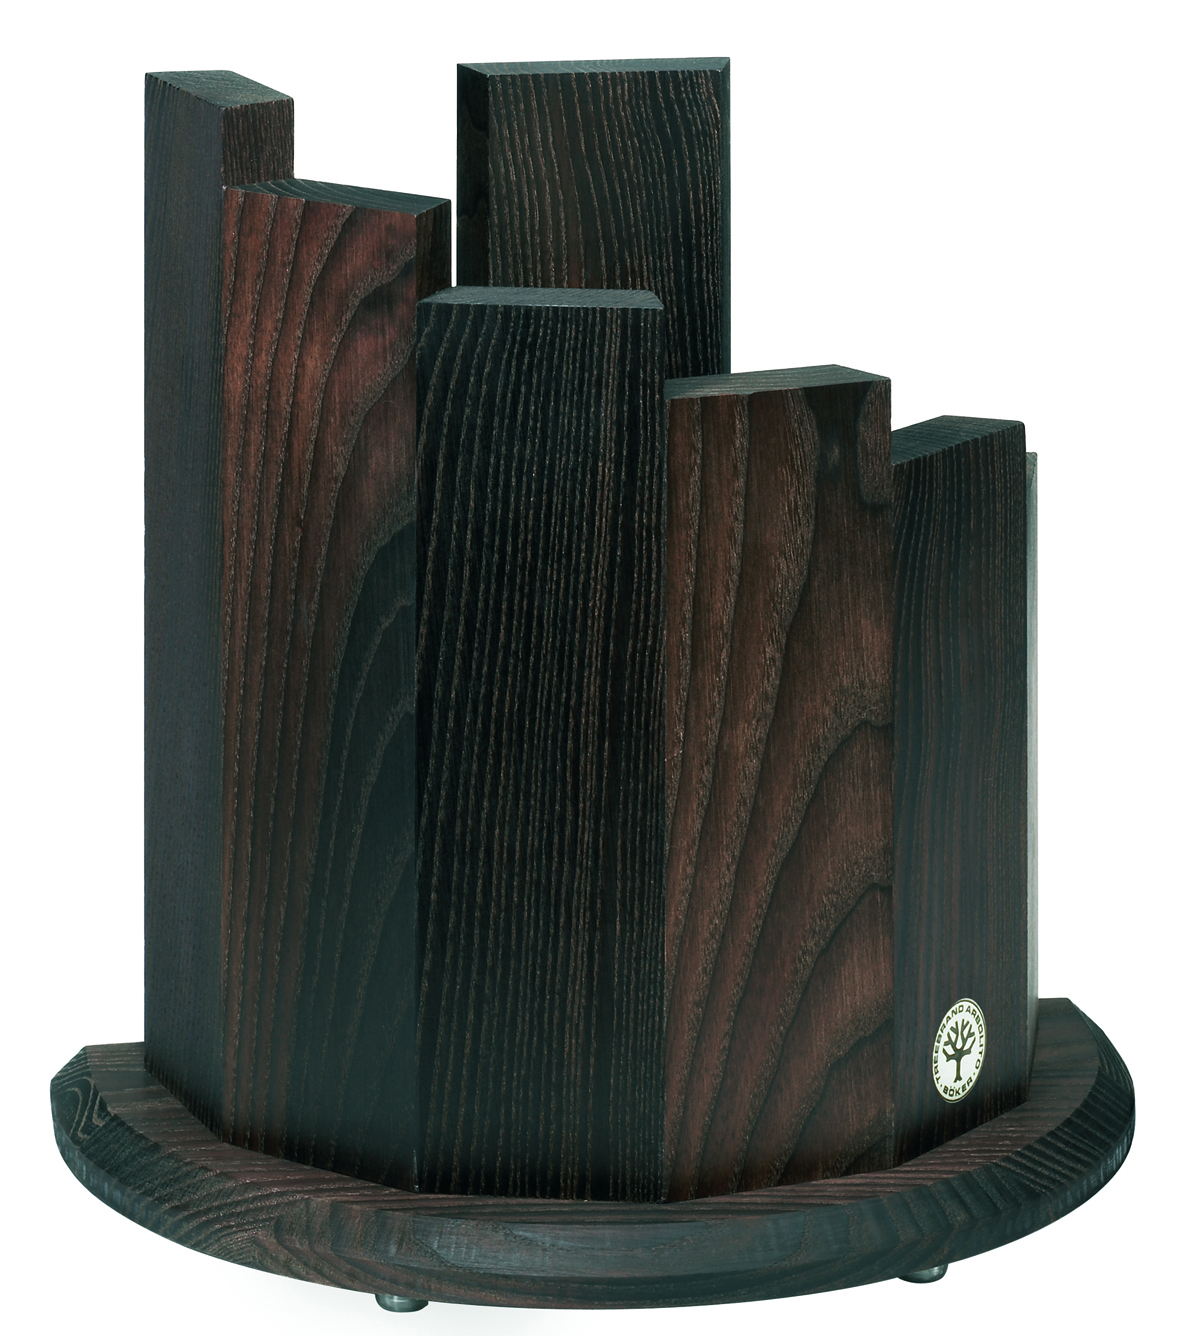 030402 - BOKER KNIFE BLOCK MAKASSAR MAP:$ 123.96